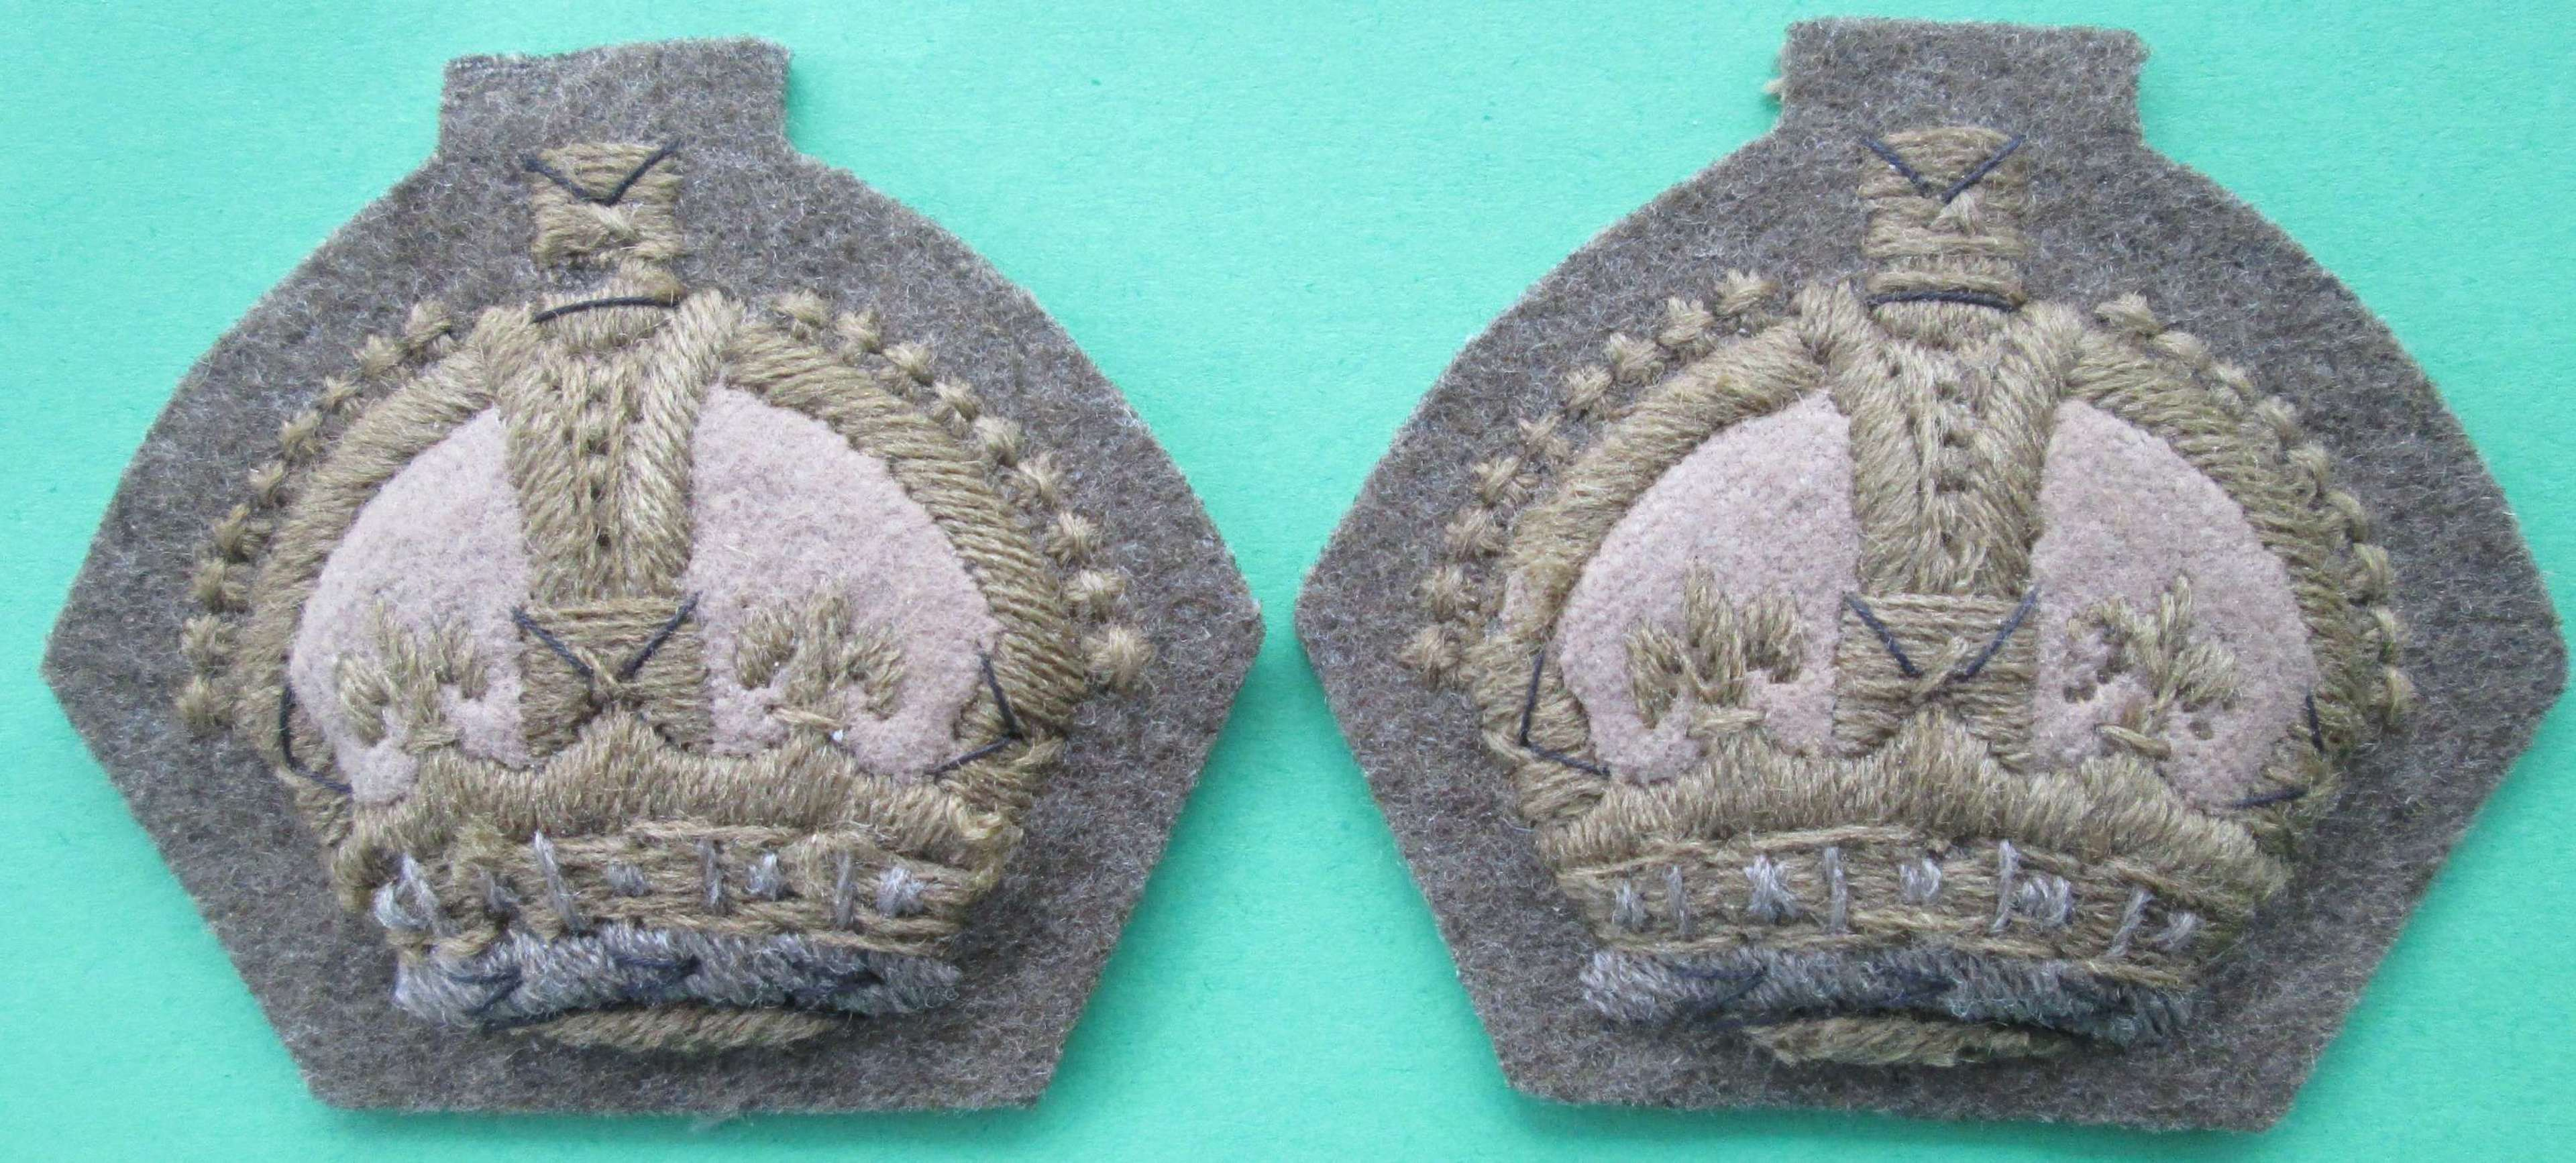 A GOOD PAIR OF SGTS CROWNS